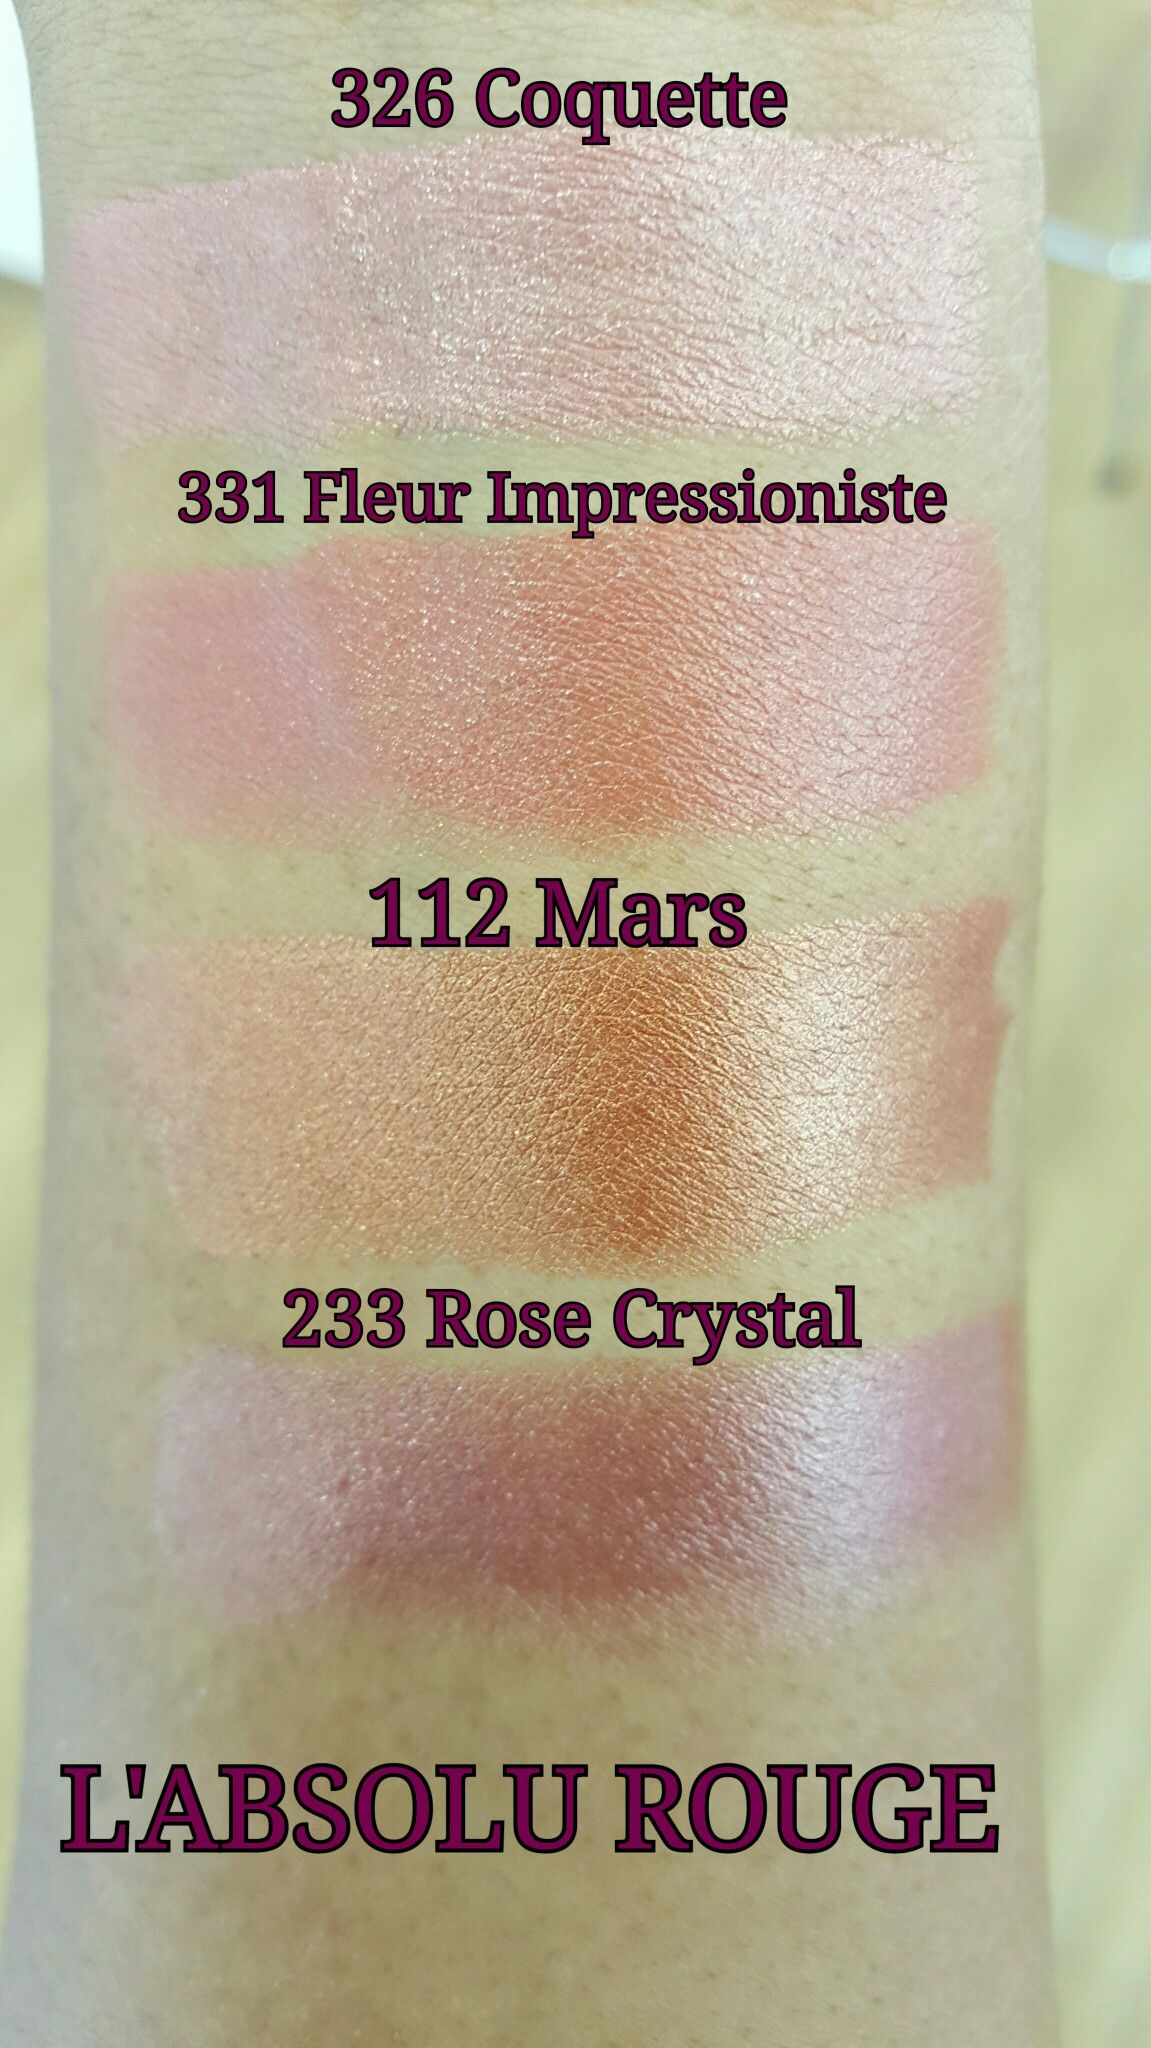 Lancome Lipsticks Swatches- L'absolu Rouge | Lancome | Pinterest ...